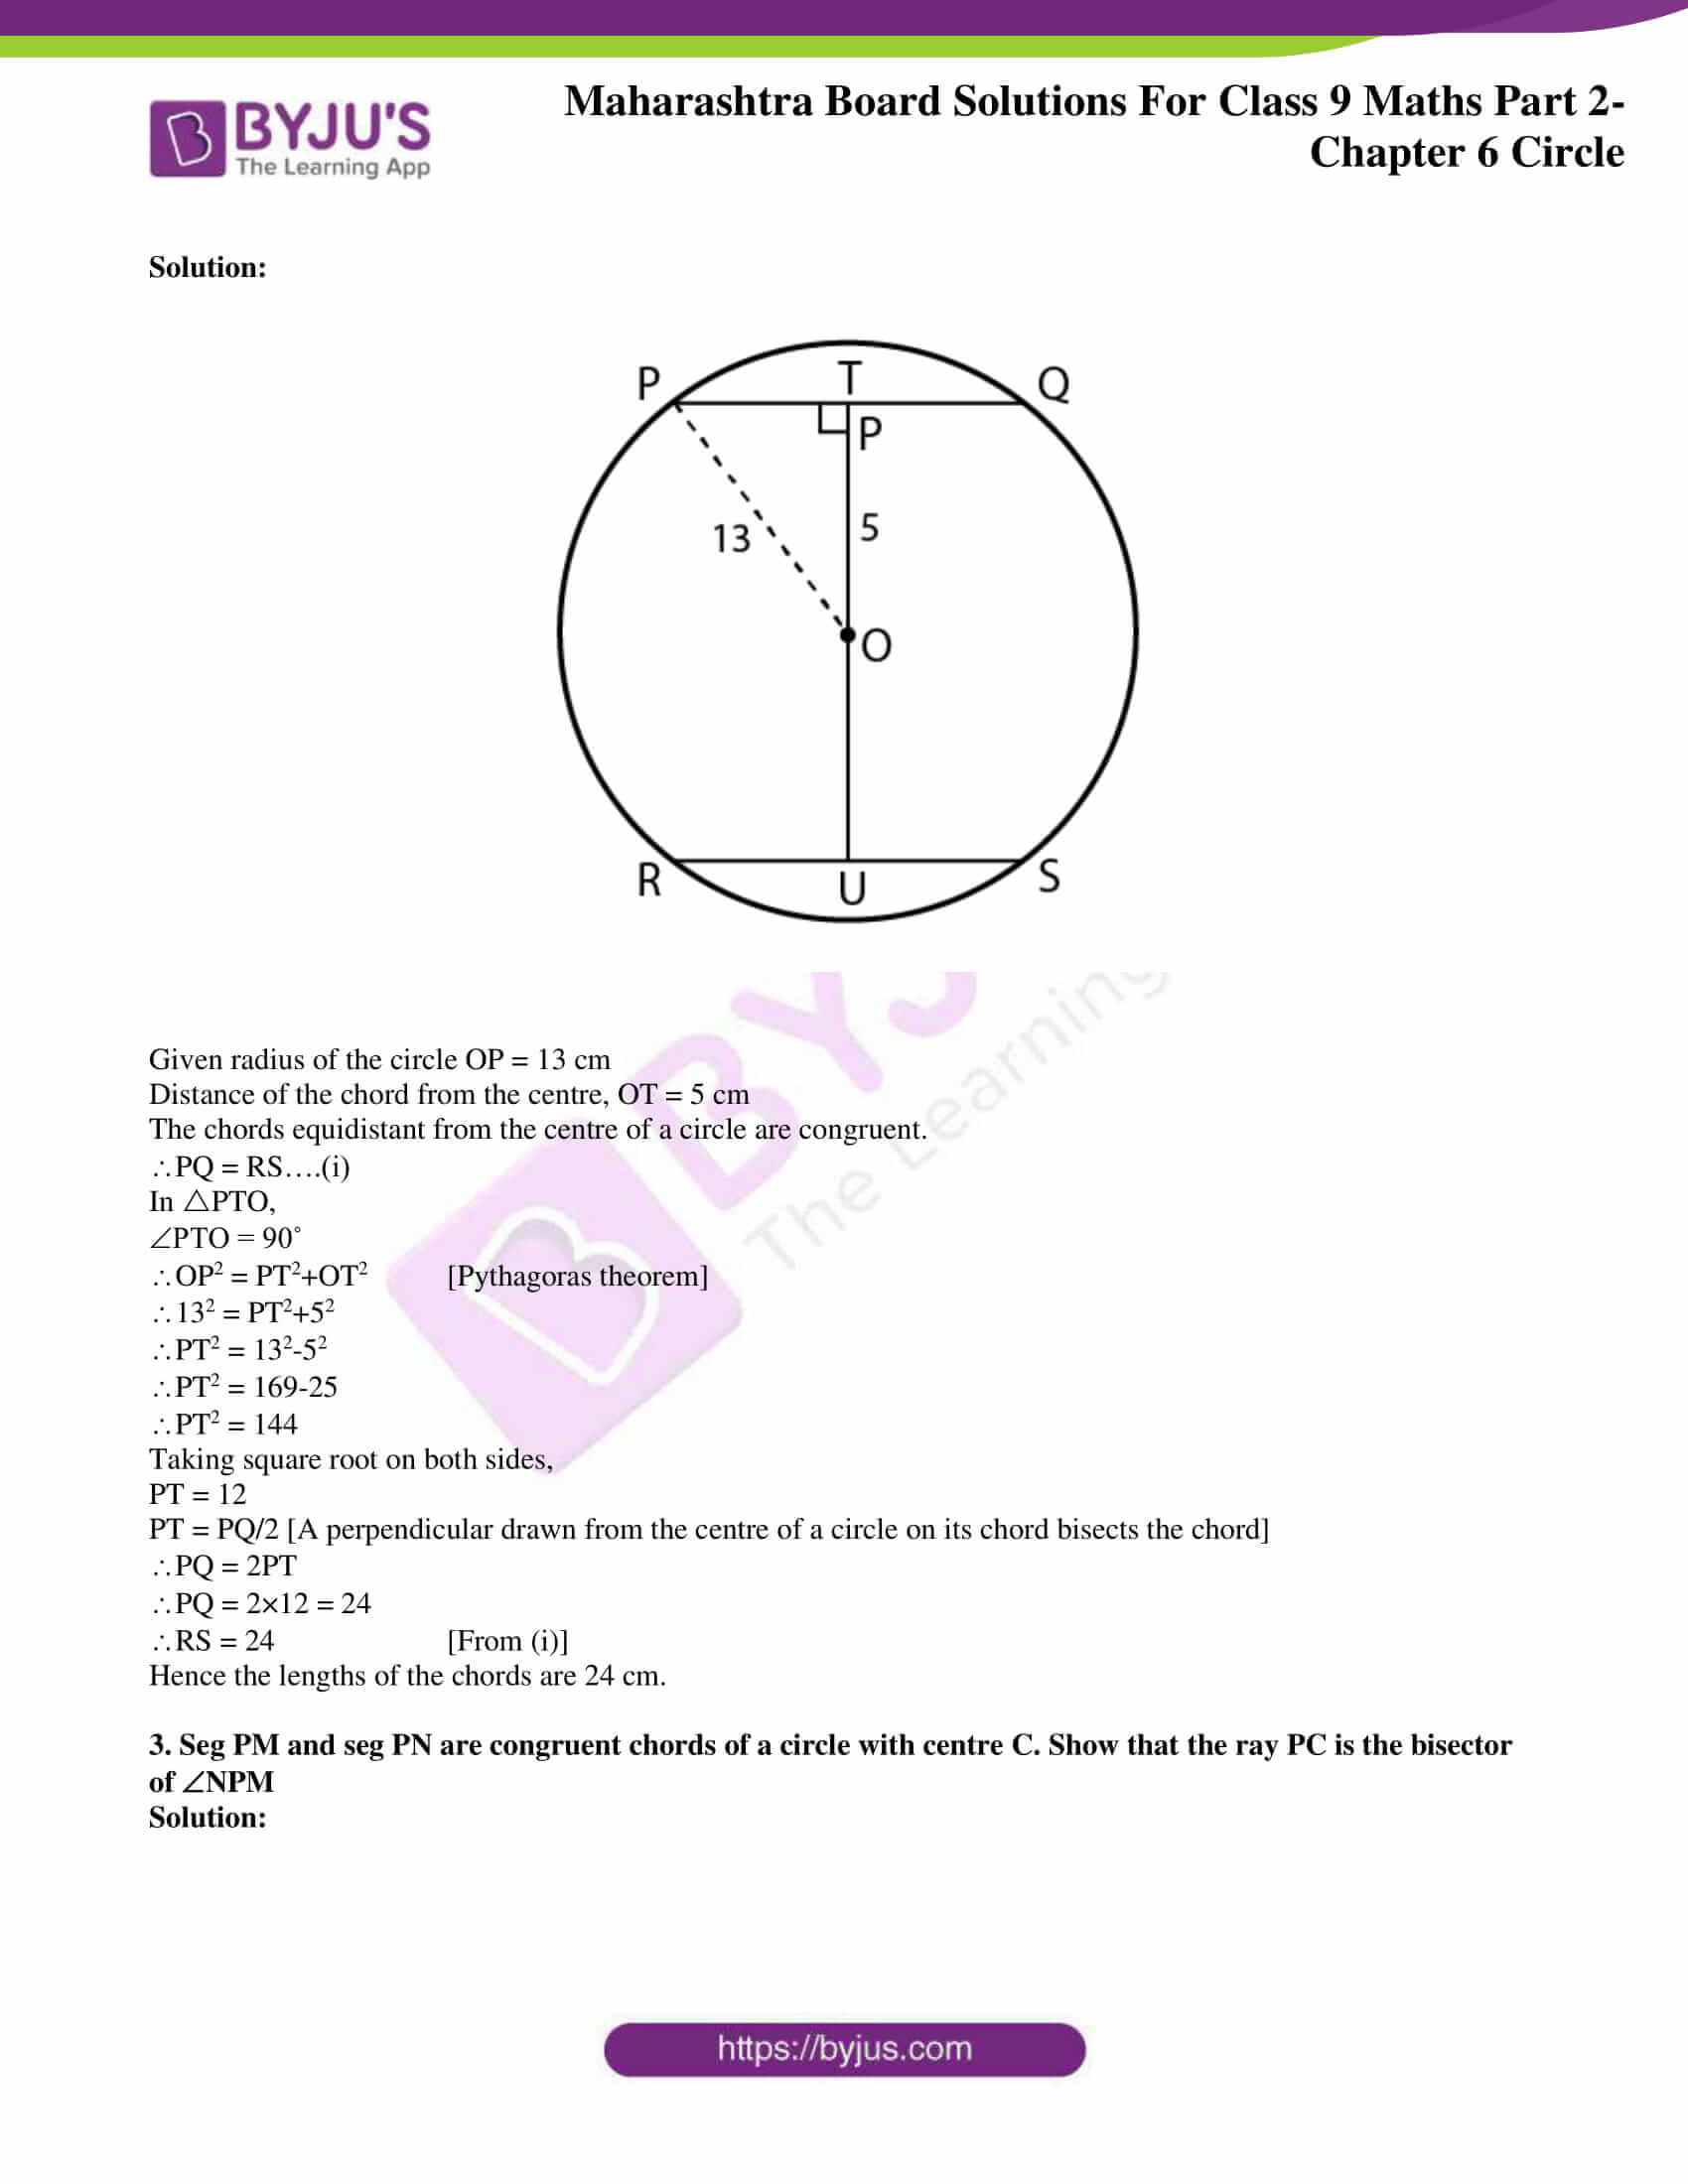 msbshse solutions for class 9 maths part 2 chapter 6 08